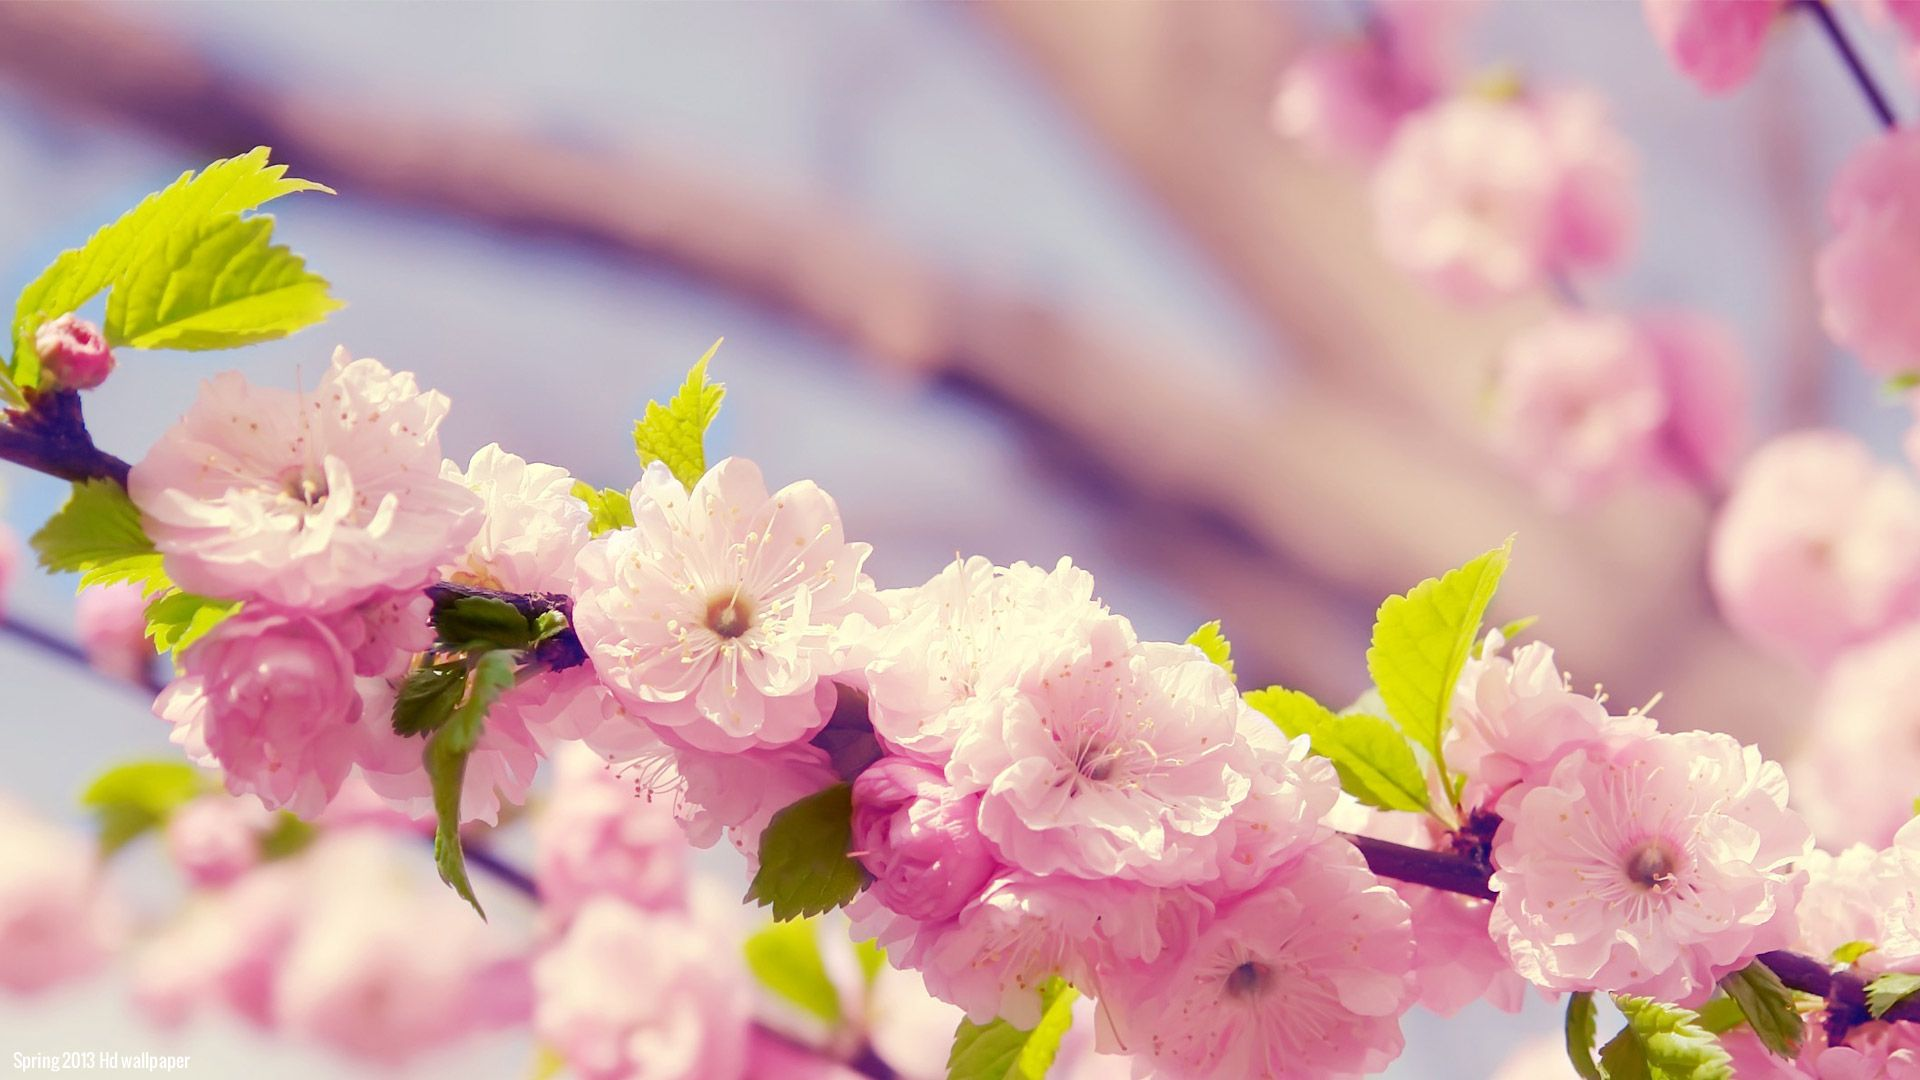 Pictures Of Spring Flowers For Wallpaper